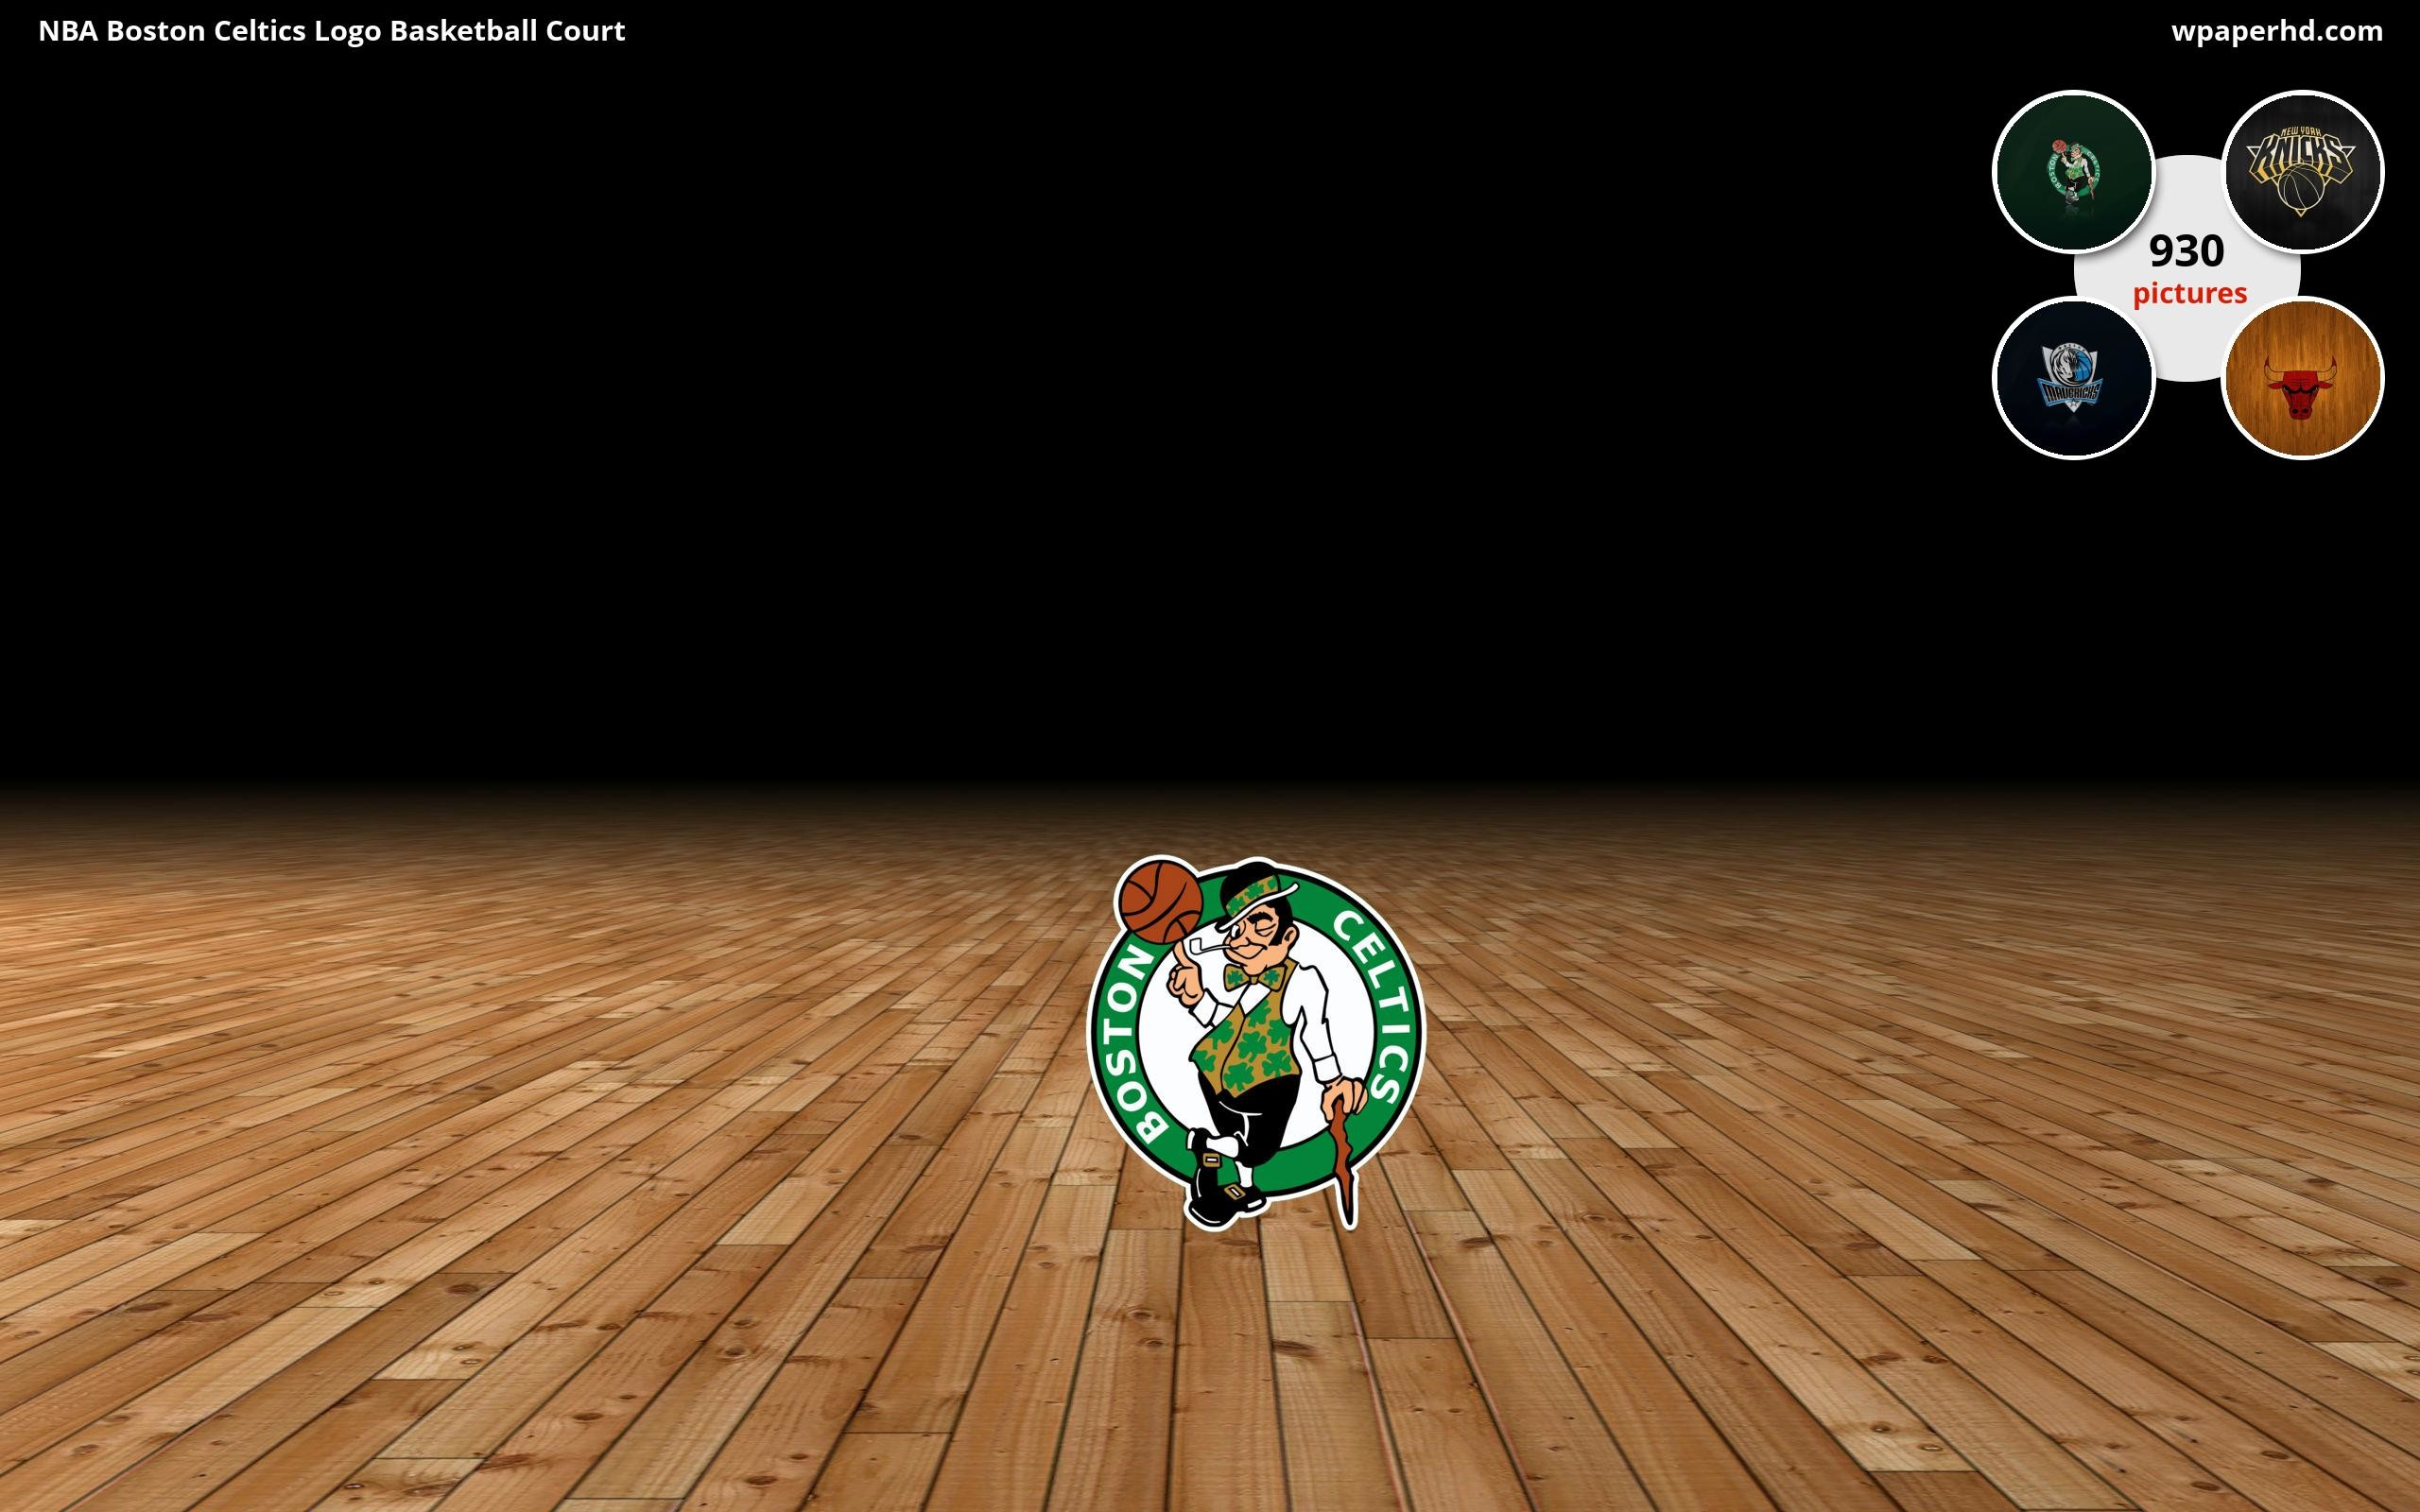 … Boston Celtics Logo Basketball Court wallpaper, where you can download  this picture in Original size and …